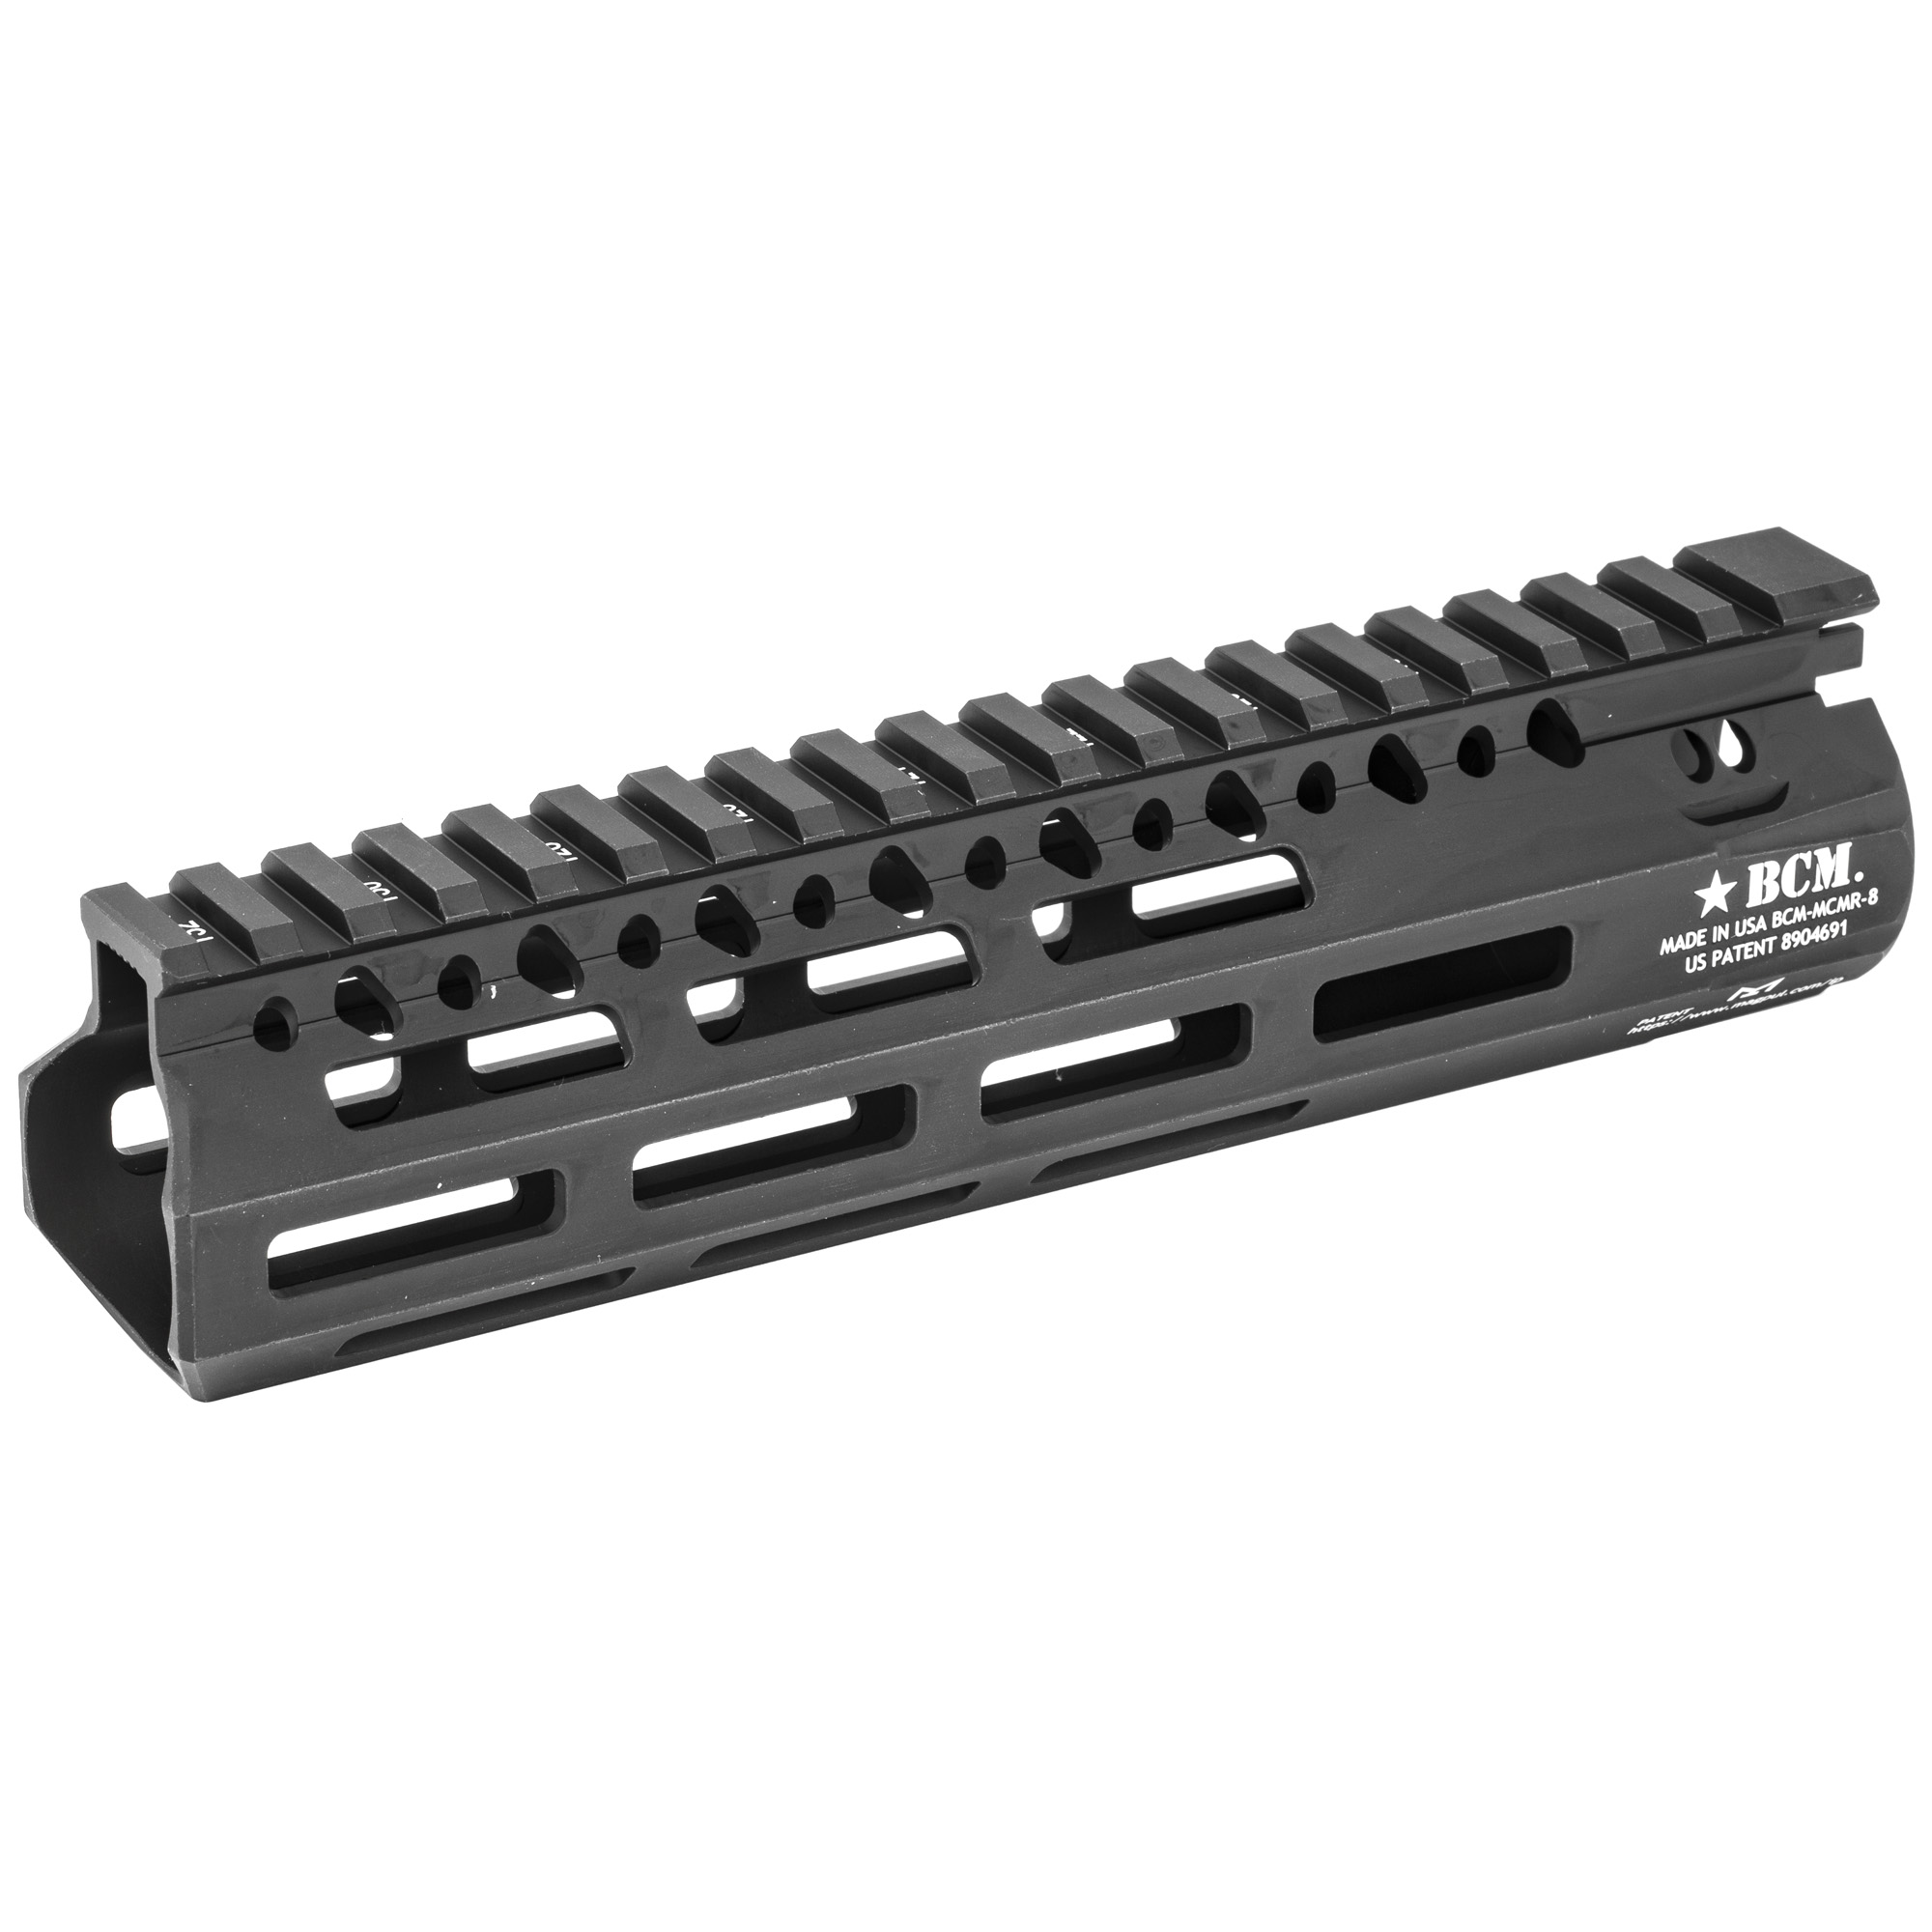 """Bravo Company's BCM MCMR-8 M-LOK Compatible Modular Rail features the same industry leading barrel nut and lock up design as originally introduced on BCM's evolutionary KMR handguard. The MCMR Series of handguards gives the shooter modularity in the M-LOK(R) platform. This proprietary patented mounting system (US Patent 8904691)"""" includes a mechanical index to the 12:00 rail and positions mounting hardware to mitigate the movement caused by heat generated by the weapon system. It is made from Precision Machined Aerospace 6061-T6 Aluminum Alloy"""" for high strength and is lightweight. The proprietary engineered profile offers additional cross sectional strength. The actual length when measured to flare is 8.39"""" and is designed to be used with a pistol length or carbine length gas system with a low profile gas block. This free float handguard eliminates loads from barrel"""" reducing the deflection for more accurate shooting."""